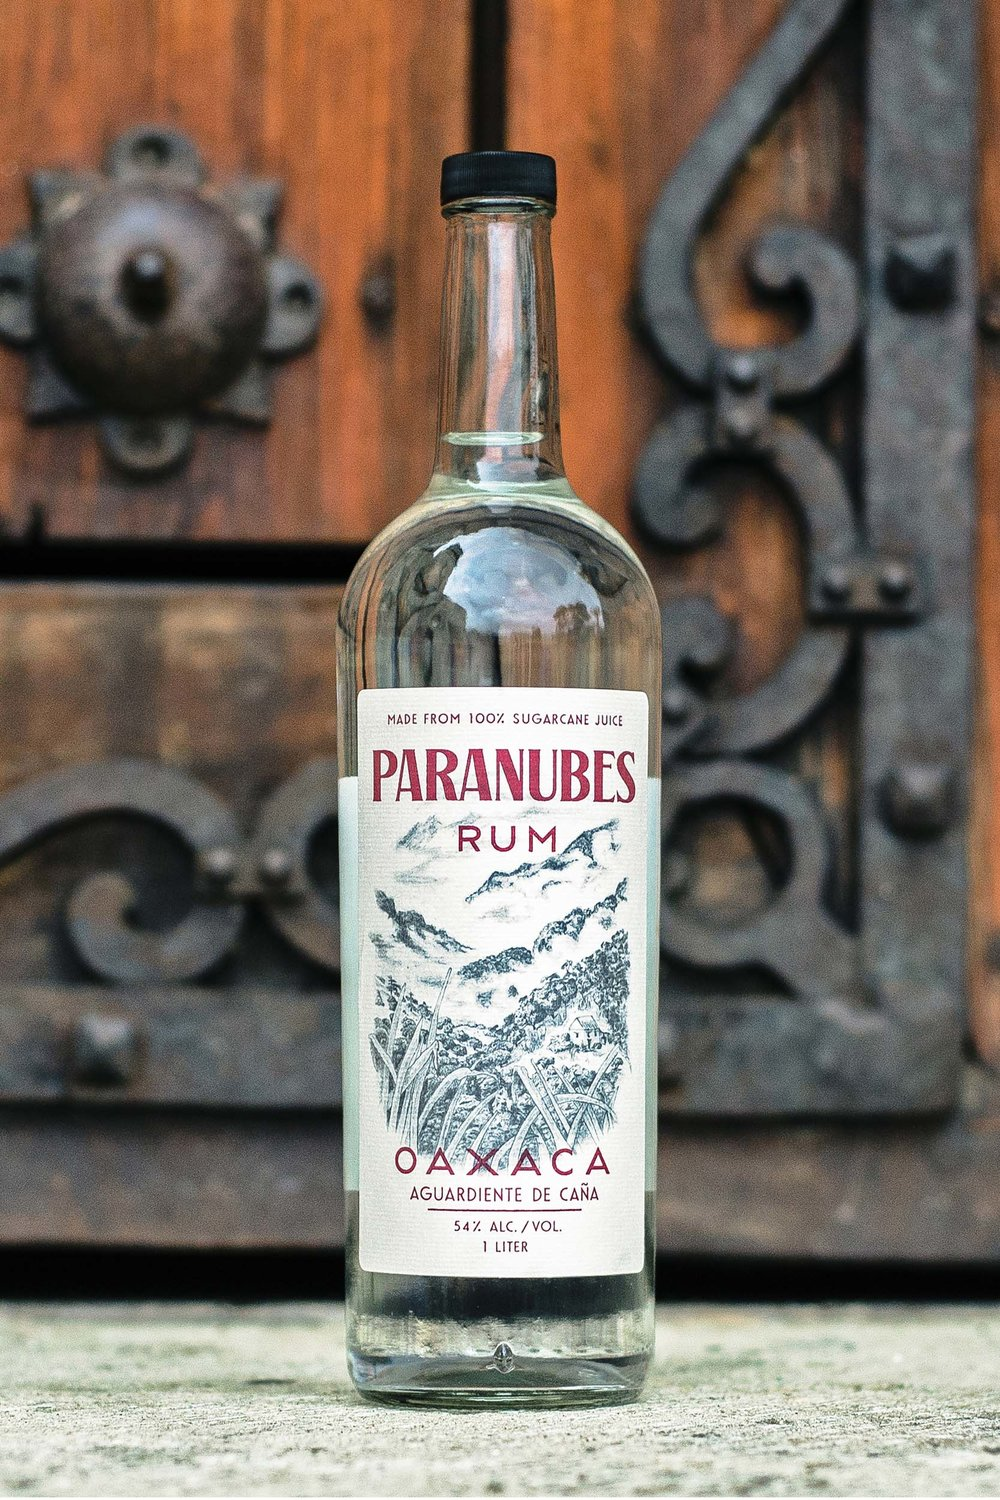 - A great spirit is a pure and undisturbed representation of raw material, capturing not just the flavor, but a sense of its place of origin. Paranubes Rum is made by wild fermenting the fresh pressed juice of sugarcane grown without pesticide or fertilizer in the rich soil of master distiller Jose Luis Carrera's farm. Distilled to proof with no additives, this rum - or aguardiente de caña as it's known regionally, is exactly what you would find lost in the cloud forest of the Sierra Mazateca mountains of Oaxaca, Mexico.We are so excited to deliver this misunderstood spirit to the world, to shine a light on the raw beauty of its land and people.